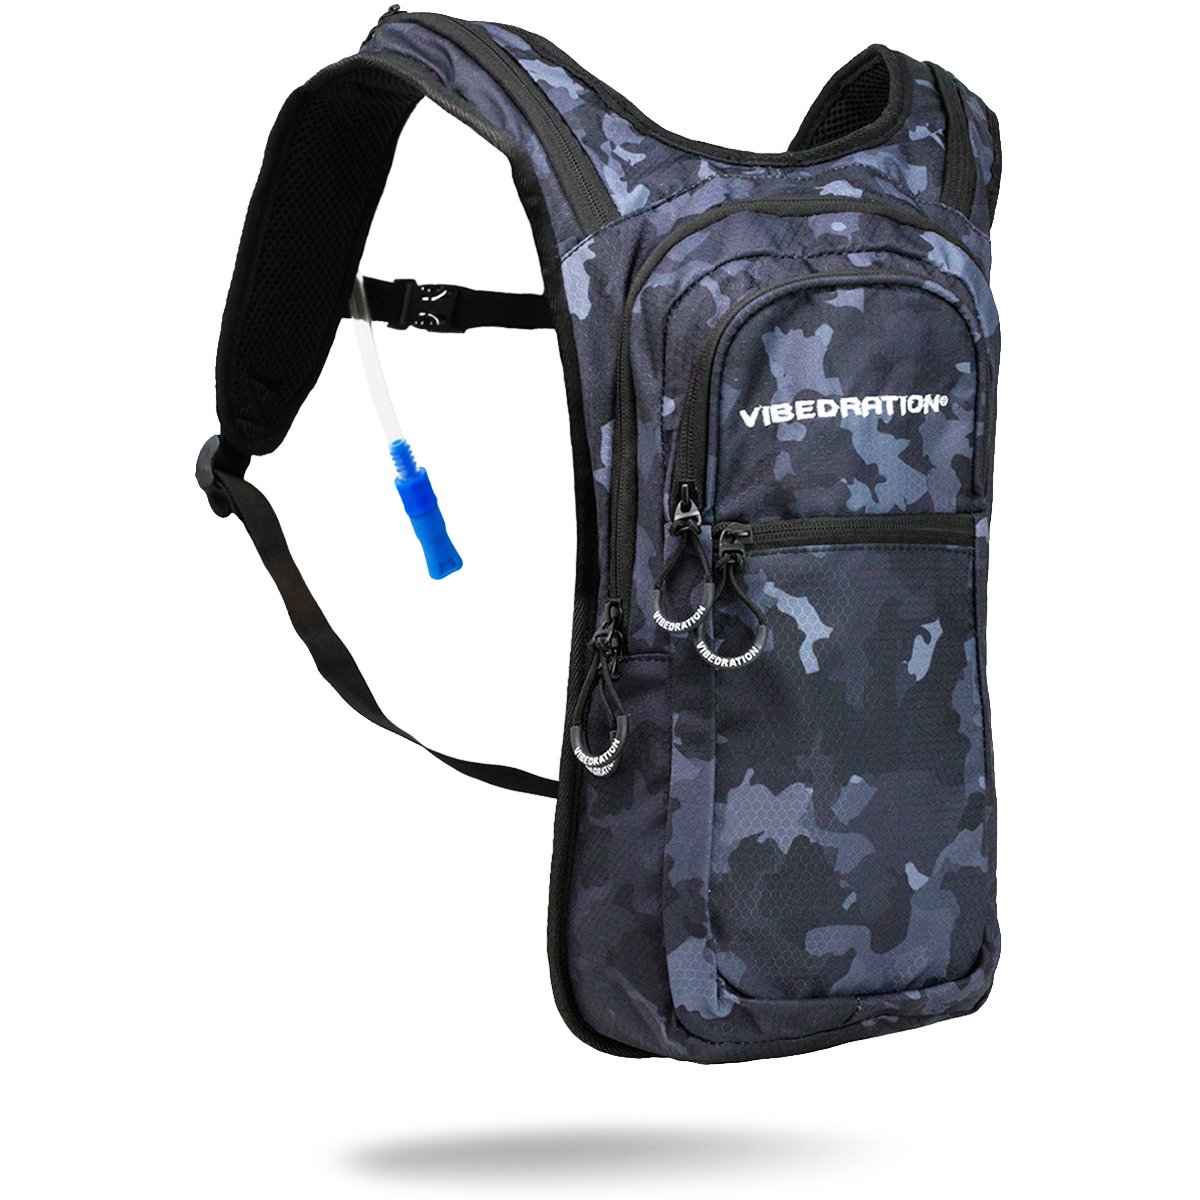 Vibedration VIP 2 Liter Hydration Pack | Festival Rave Hydration, Hiking Camping Backpack (Camo - Black)